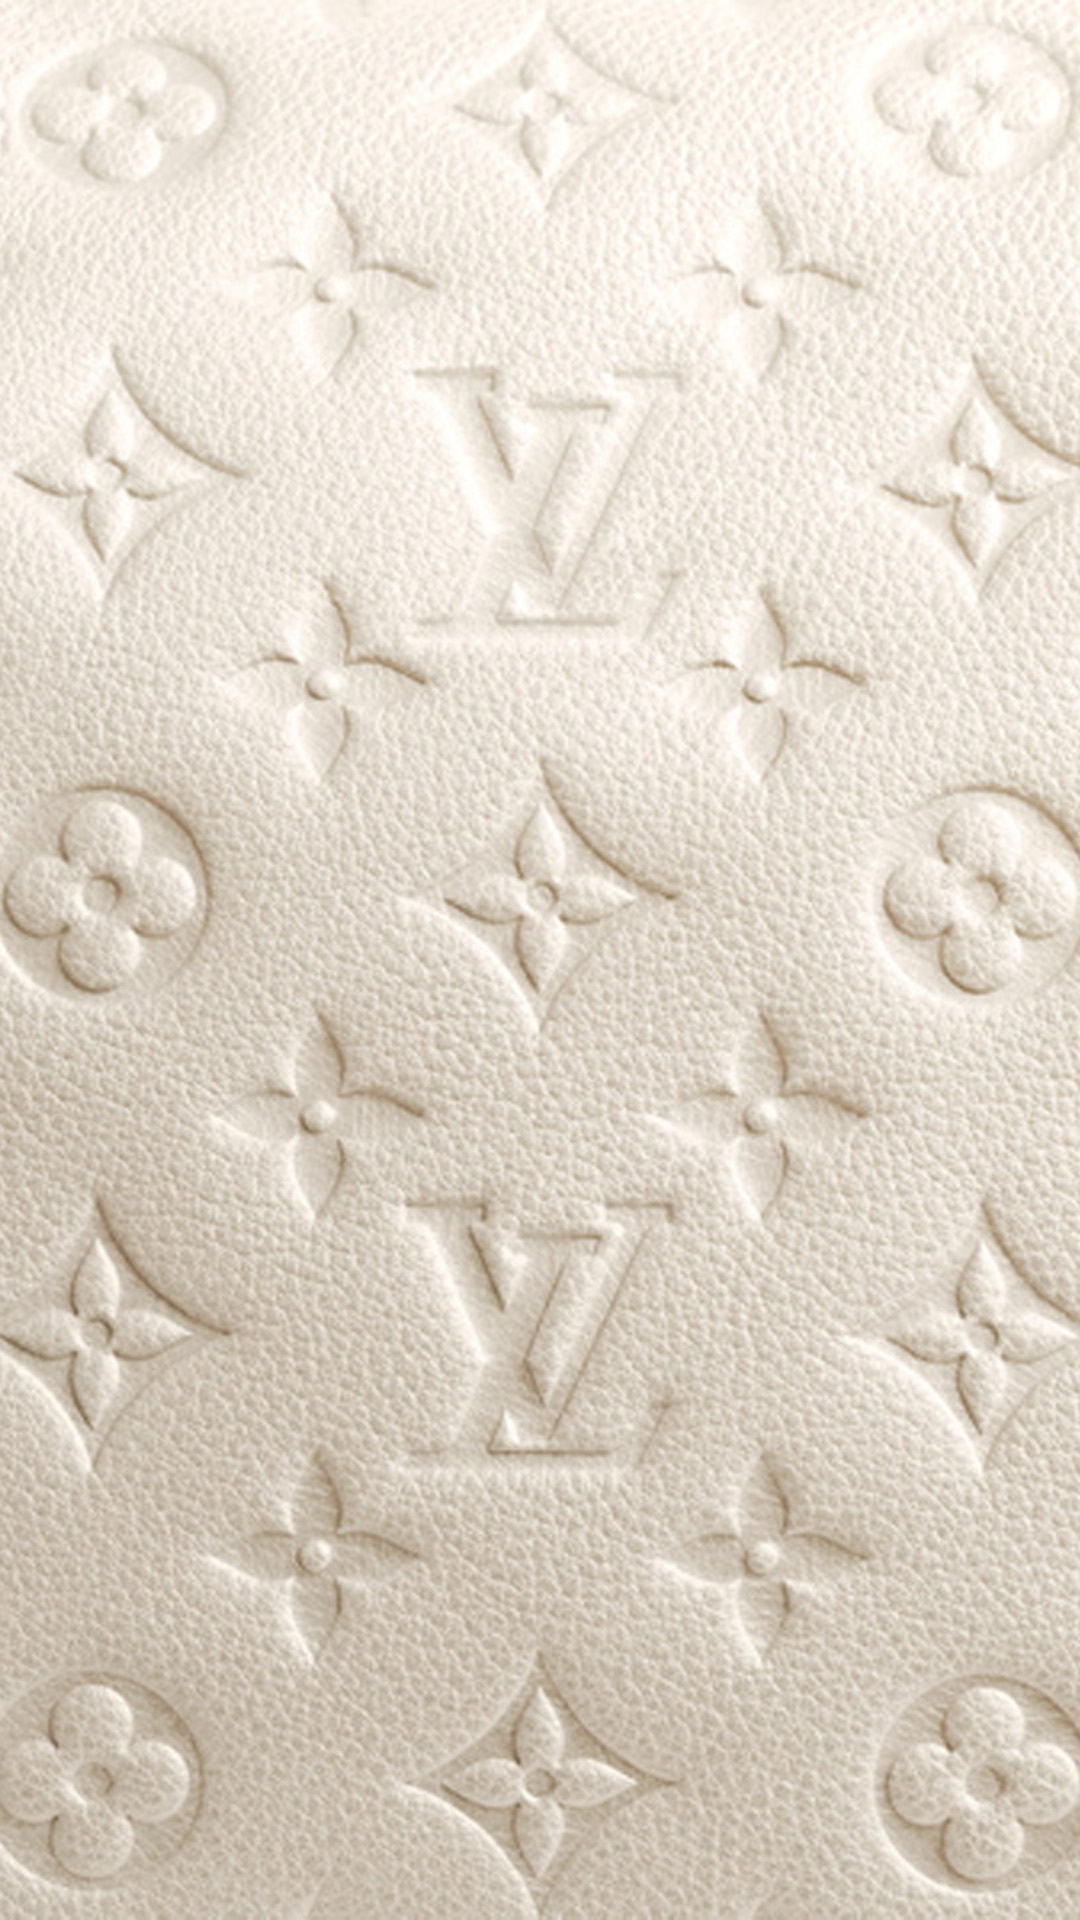 Wallpaper iphone louis vuitton - Louis Vuitton Monogram Empreinte 2 Hd Wallpaper Iphone 6 Plus